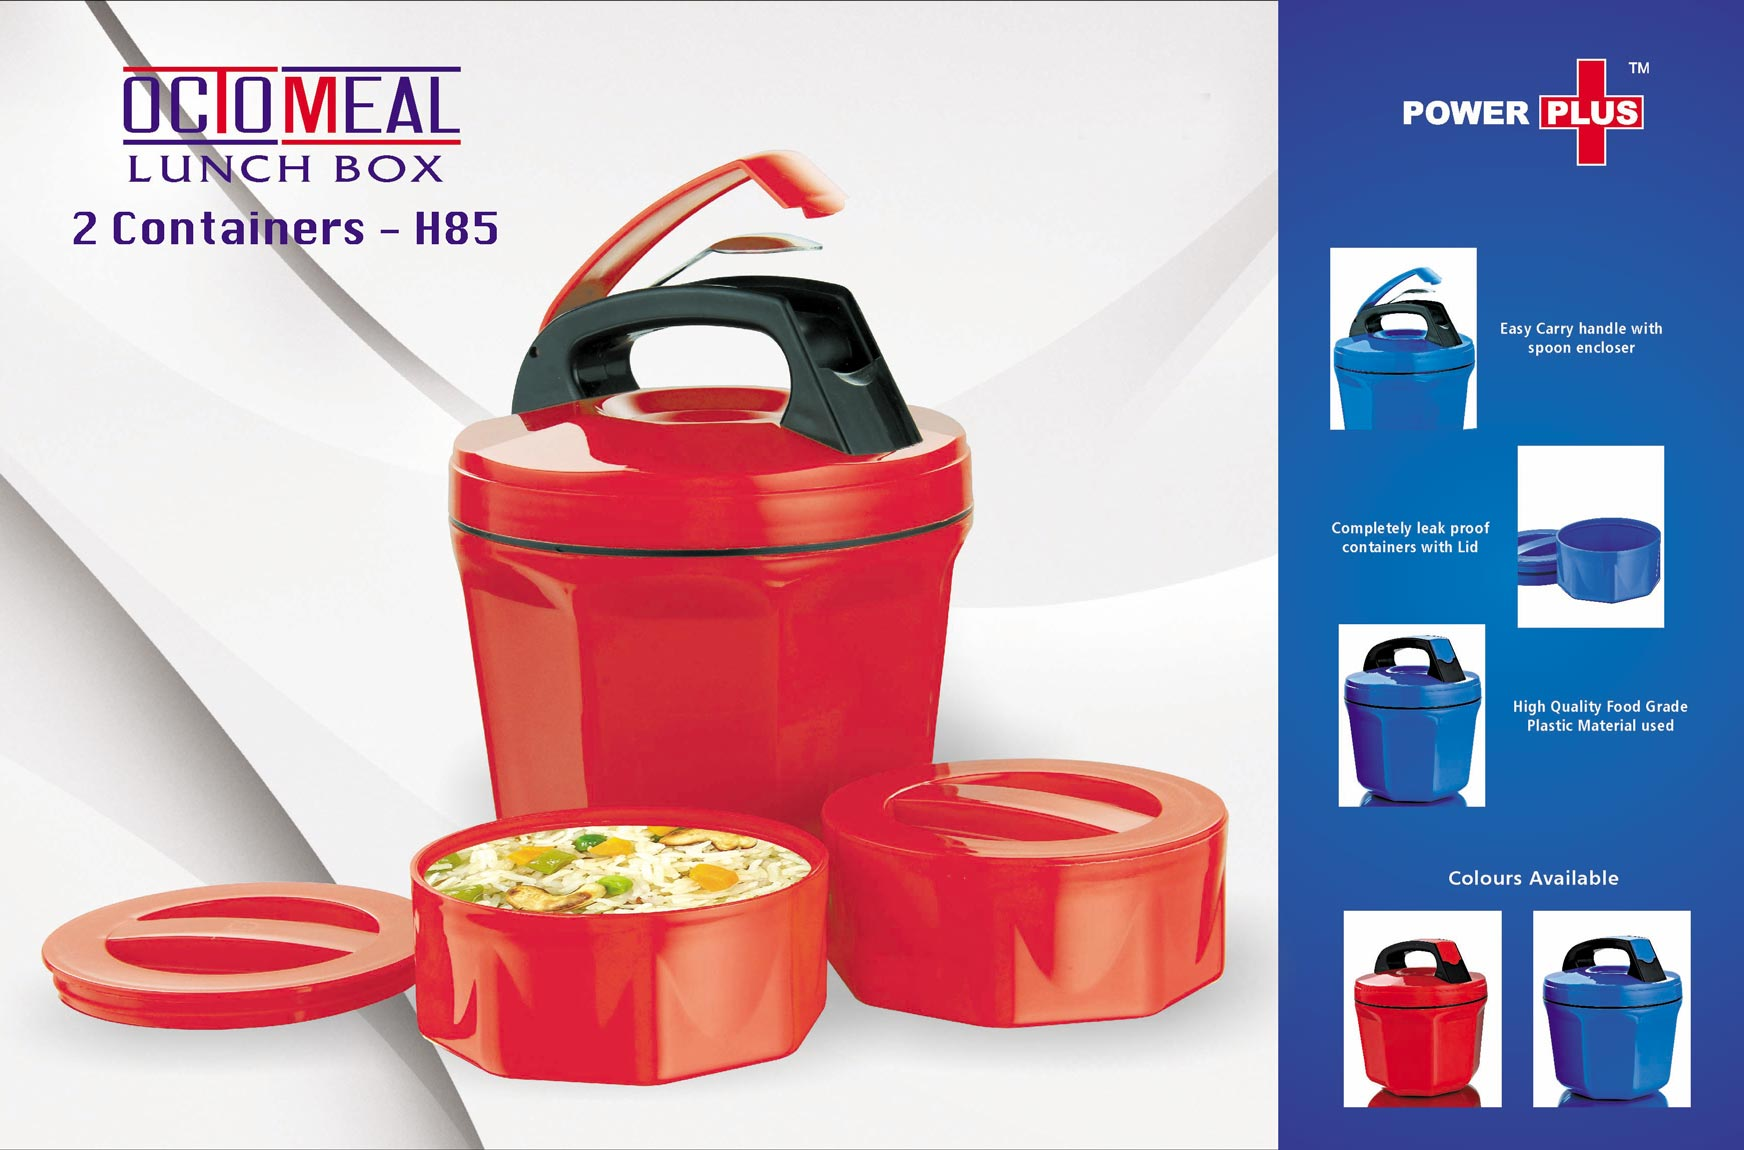 Octomeal Lunch box - 2 containers (plastic)